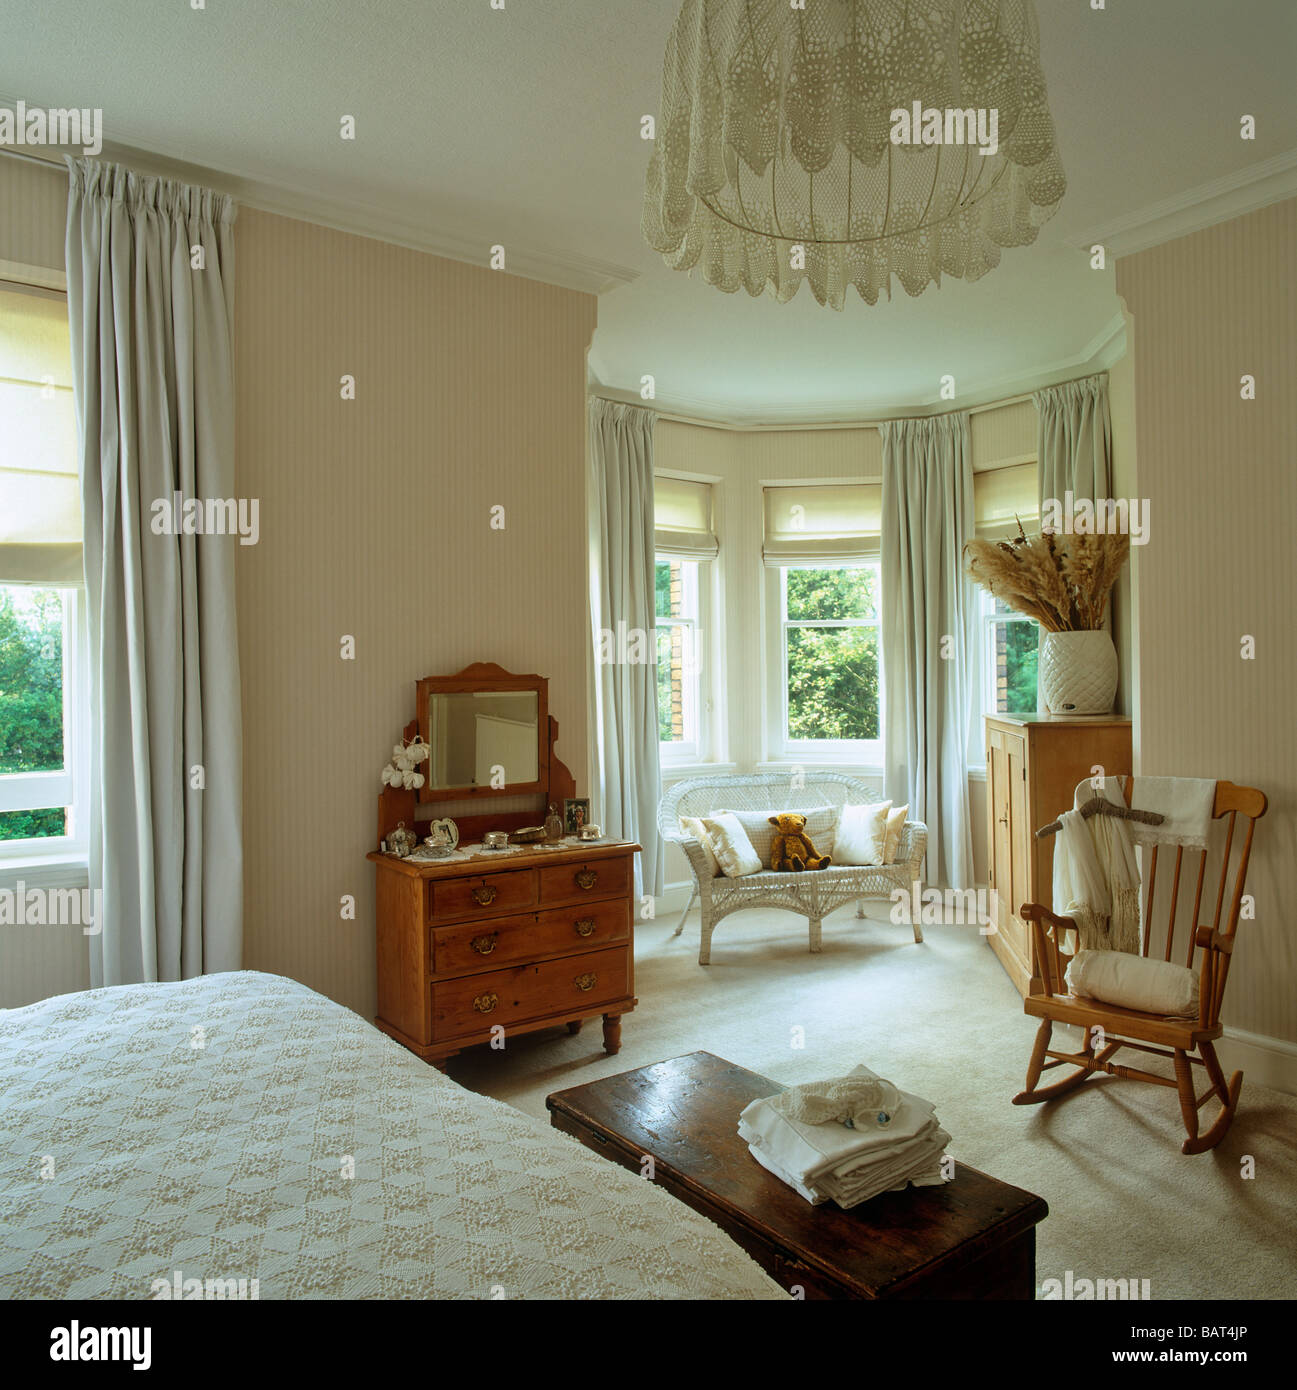 Pale Bedroom Pale Bedroom With Pine Furniture And Bay Window Stock Photo